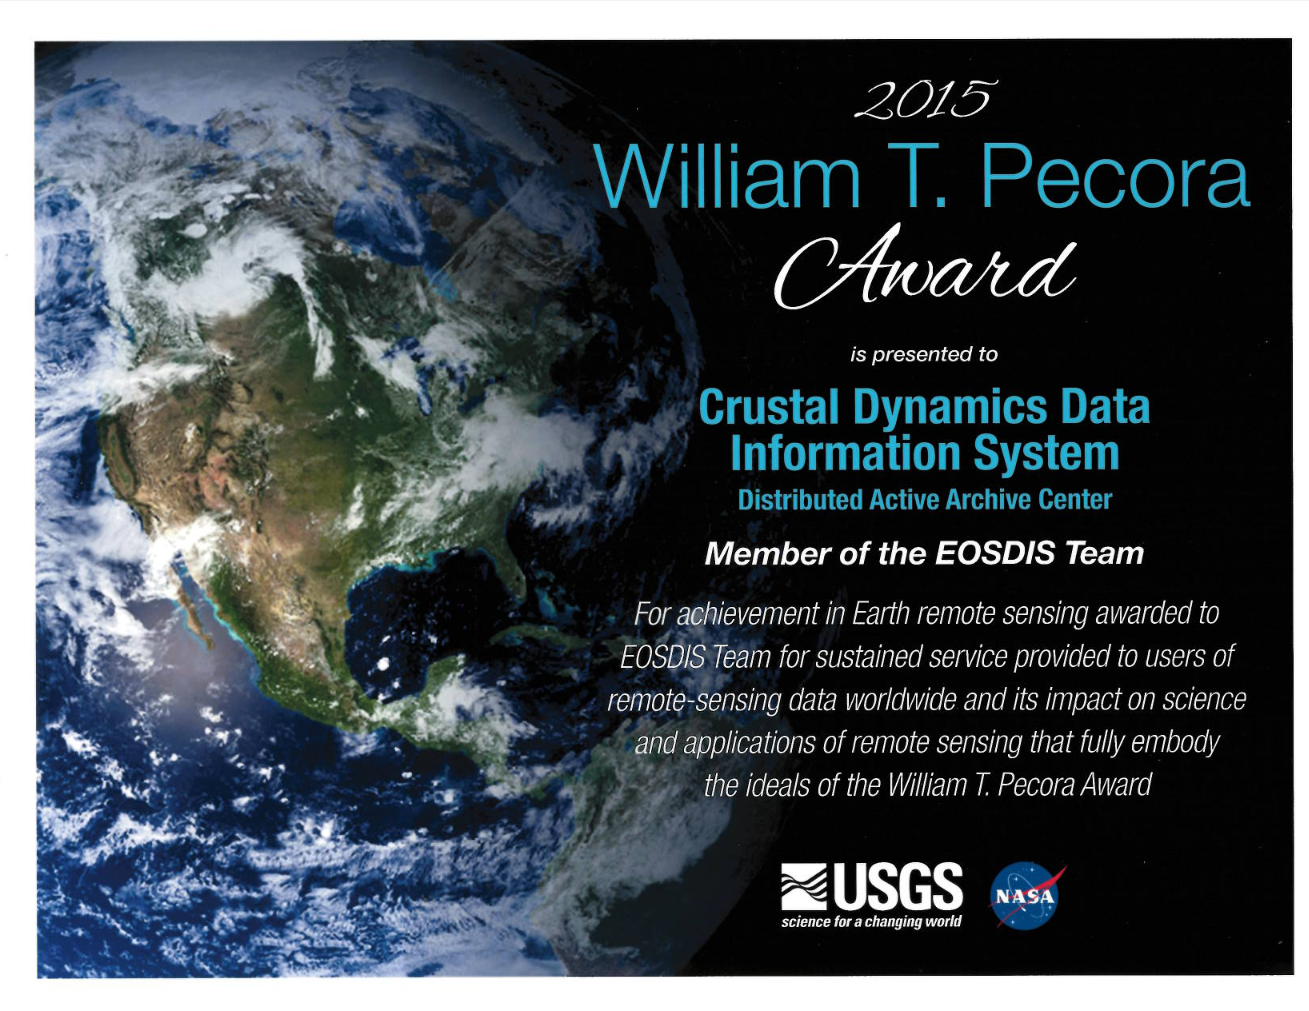 William T Pecora Award Certificate for 2015 for the NASA CDDIS